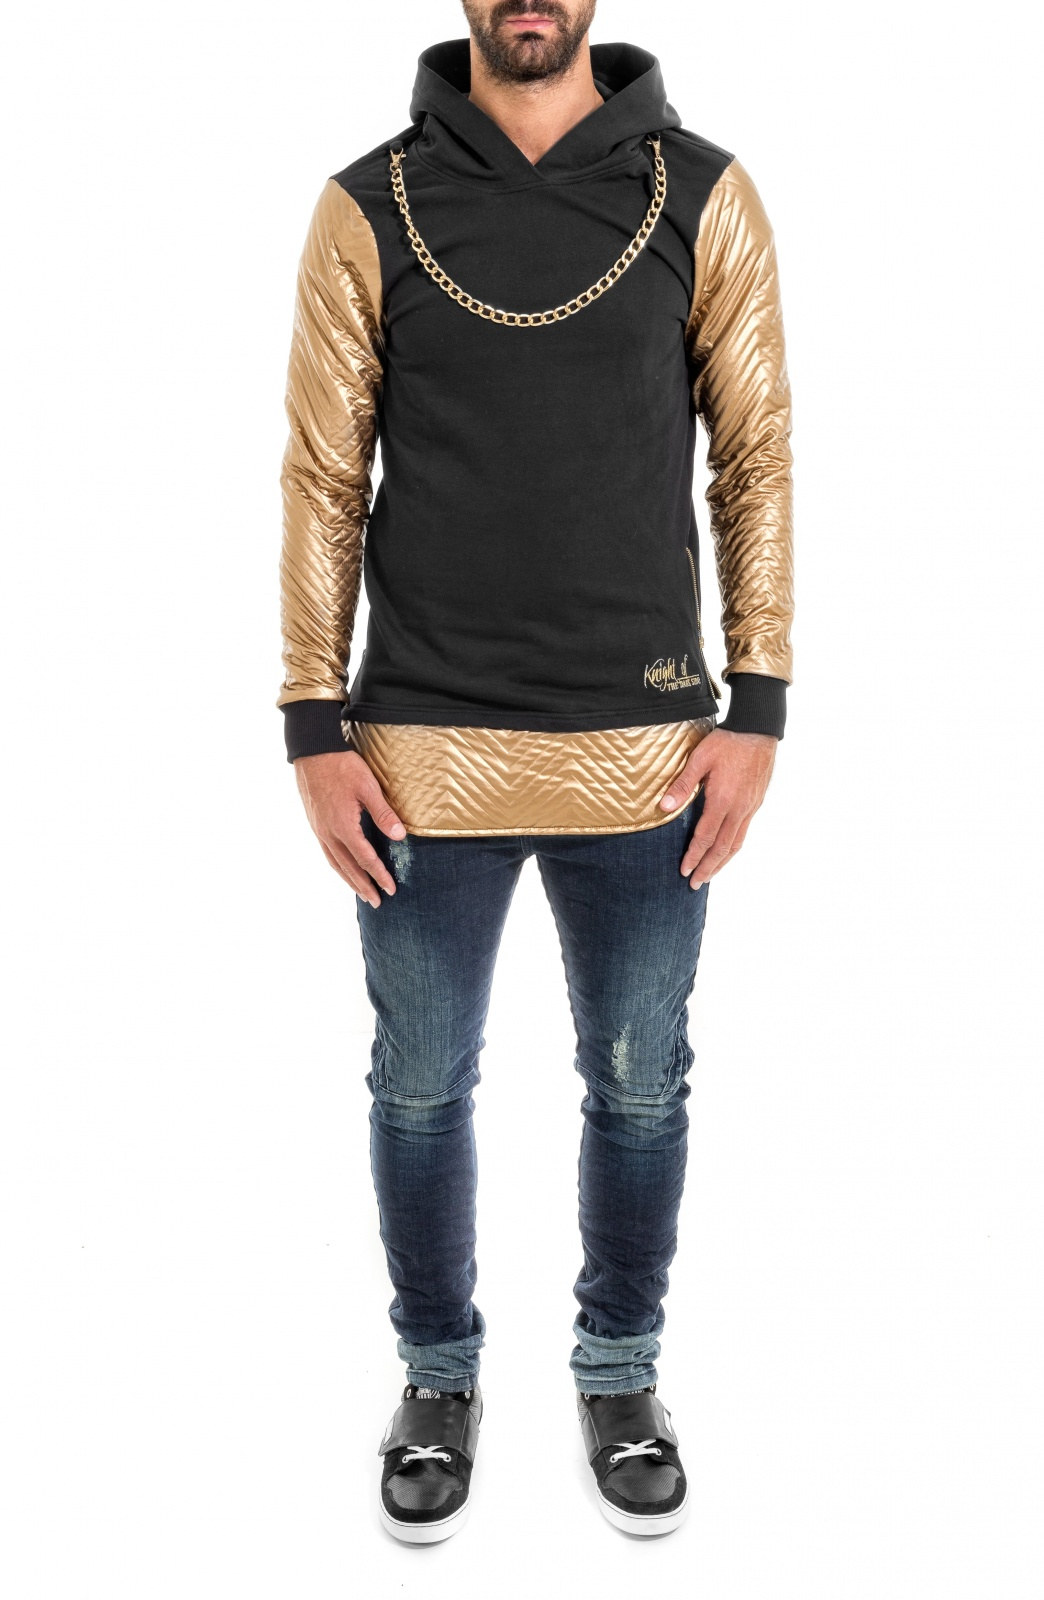 CAMISOLA GOLD&SILVER